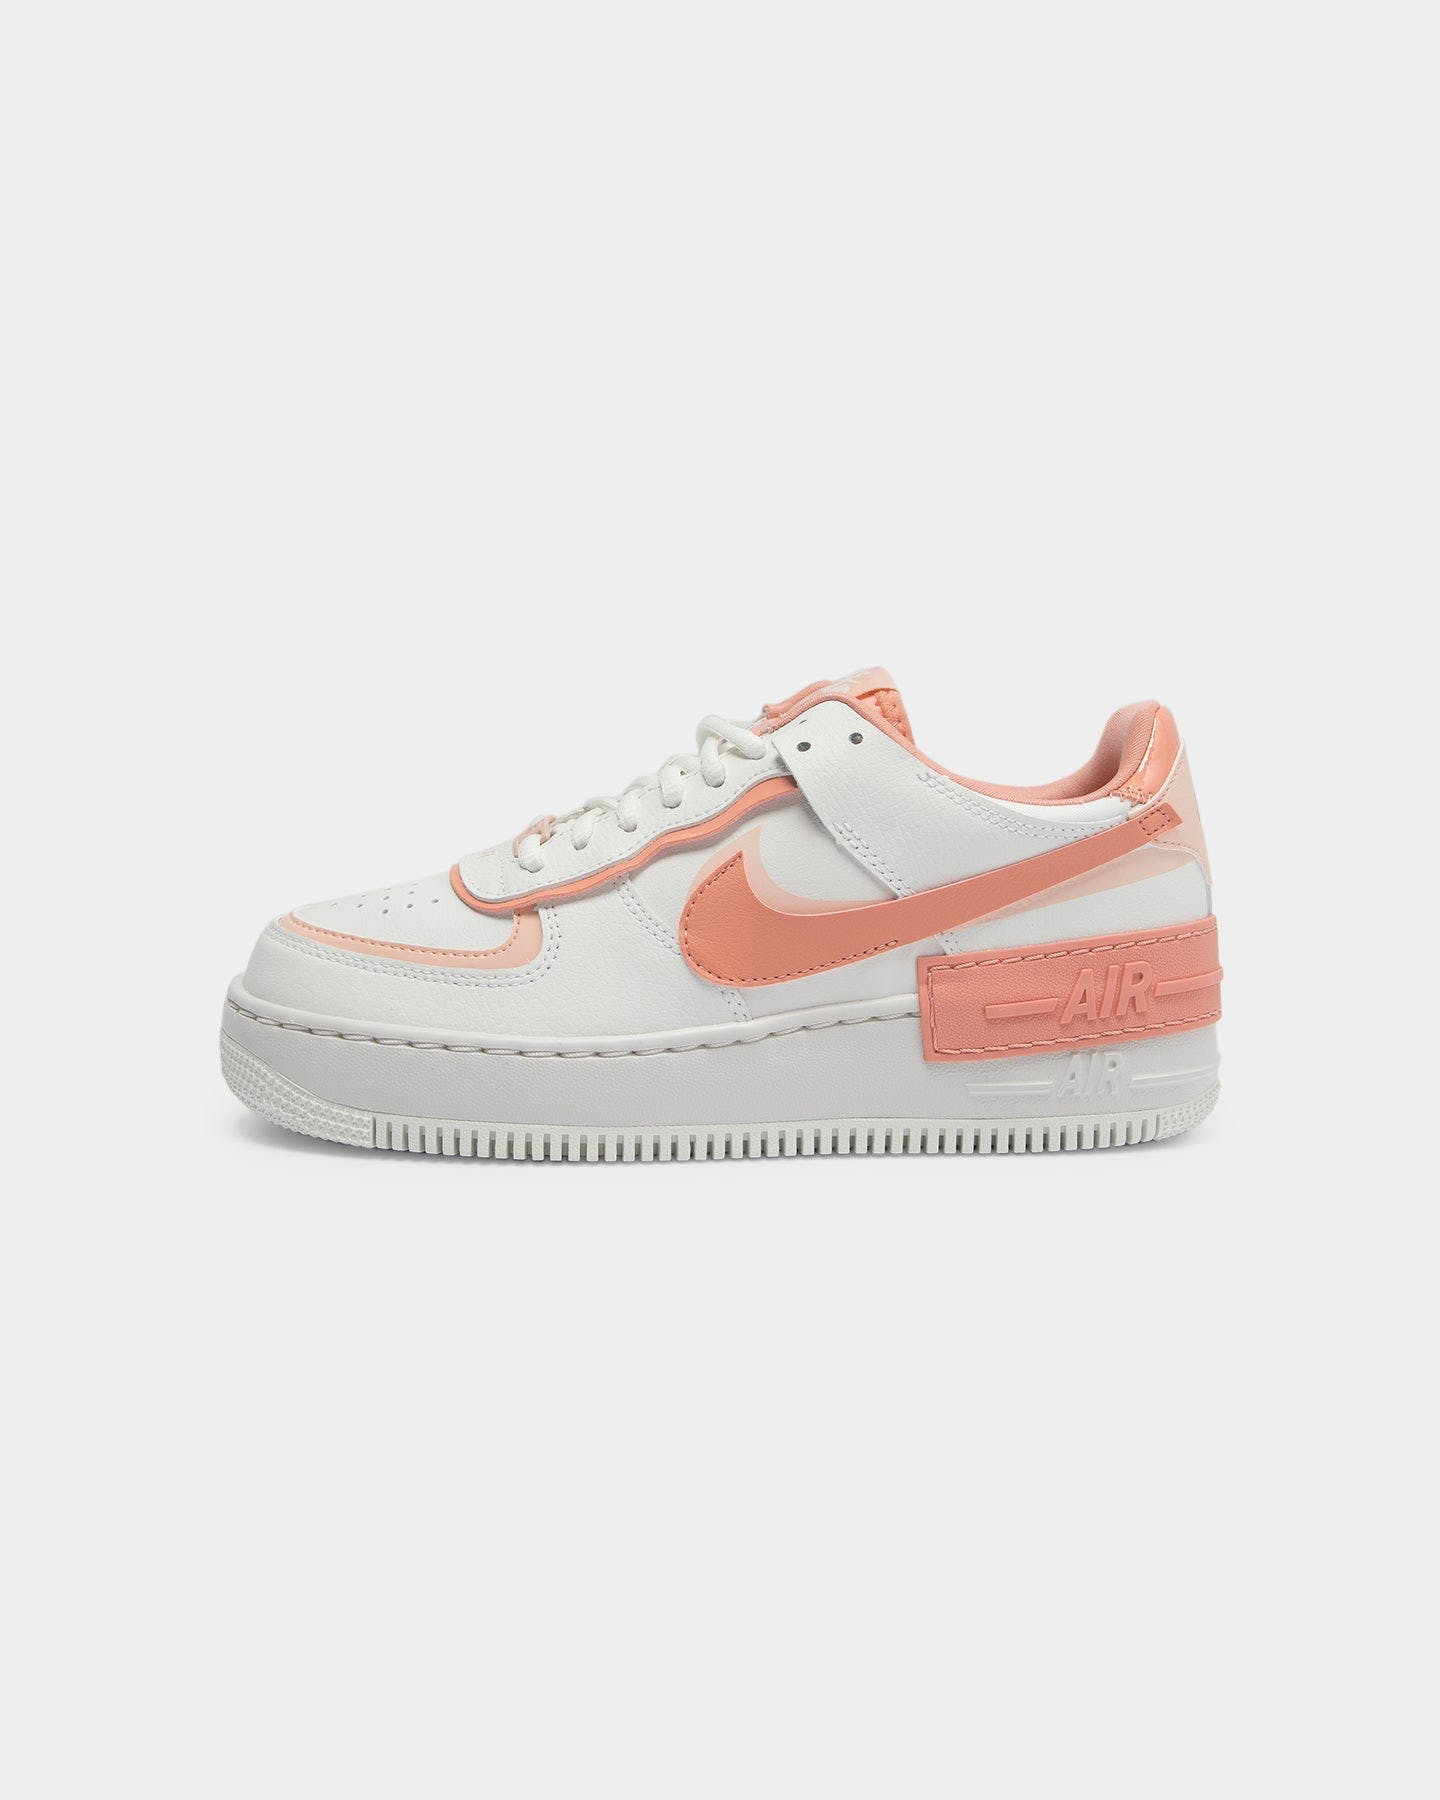 Nike Women S Air Force 1 Shadow White Pink Coral Culture Kings Nike air force 1 jester xx white pink. nike women s air force 1 shadow white pink coral